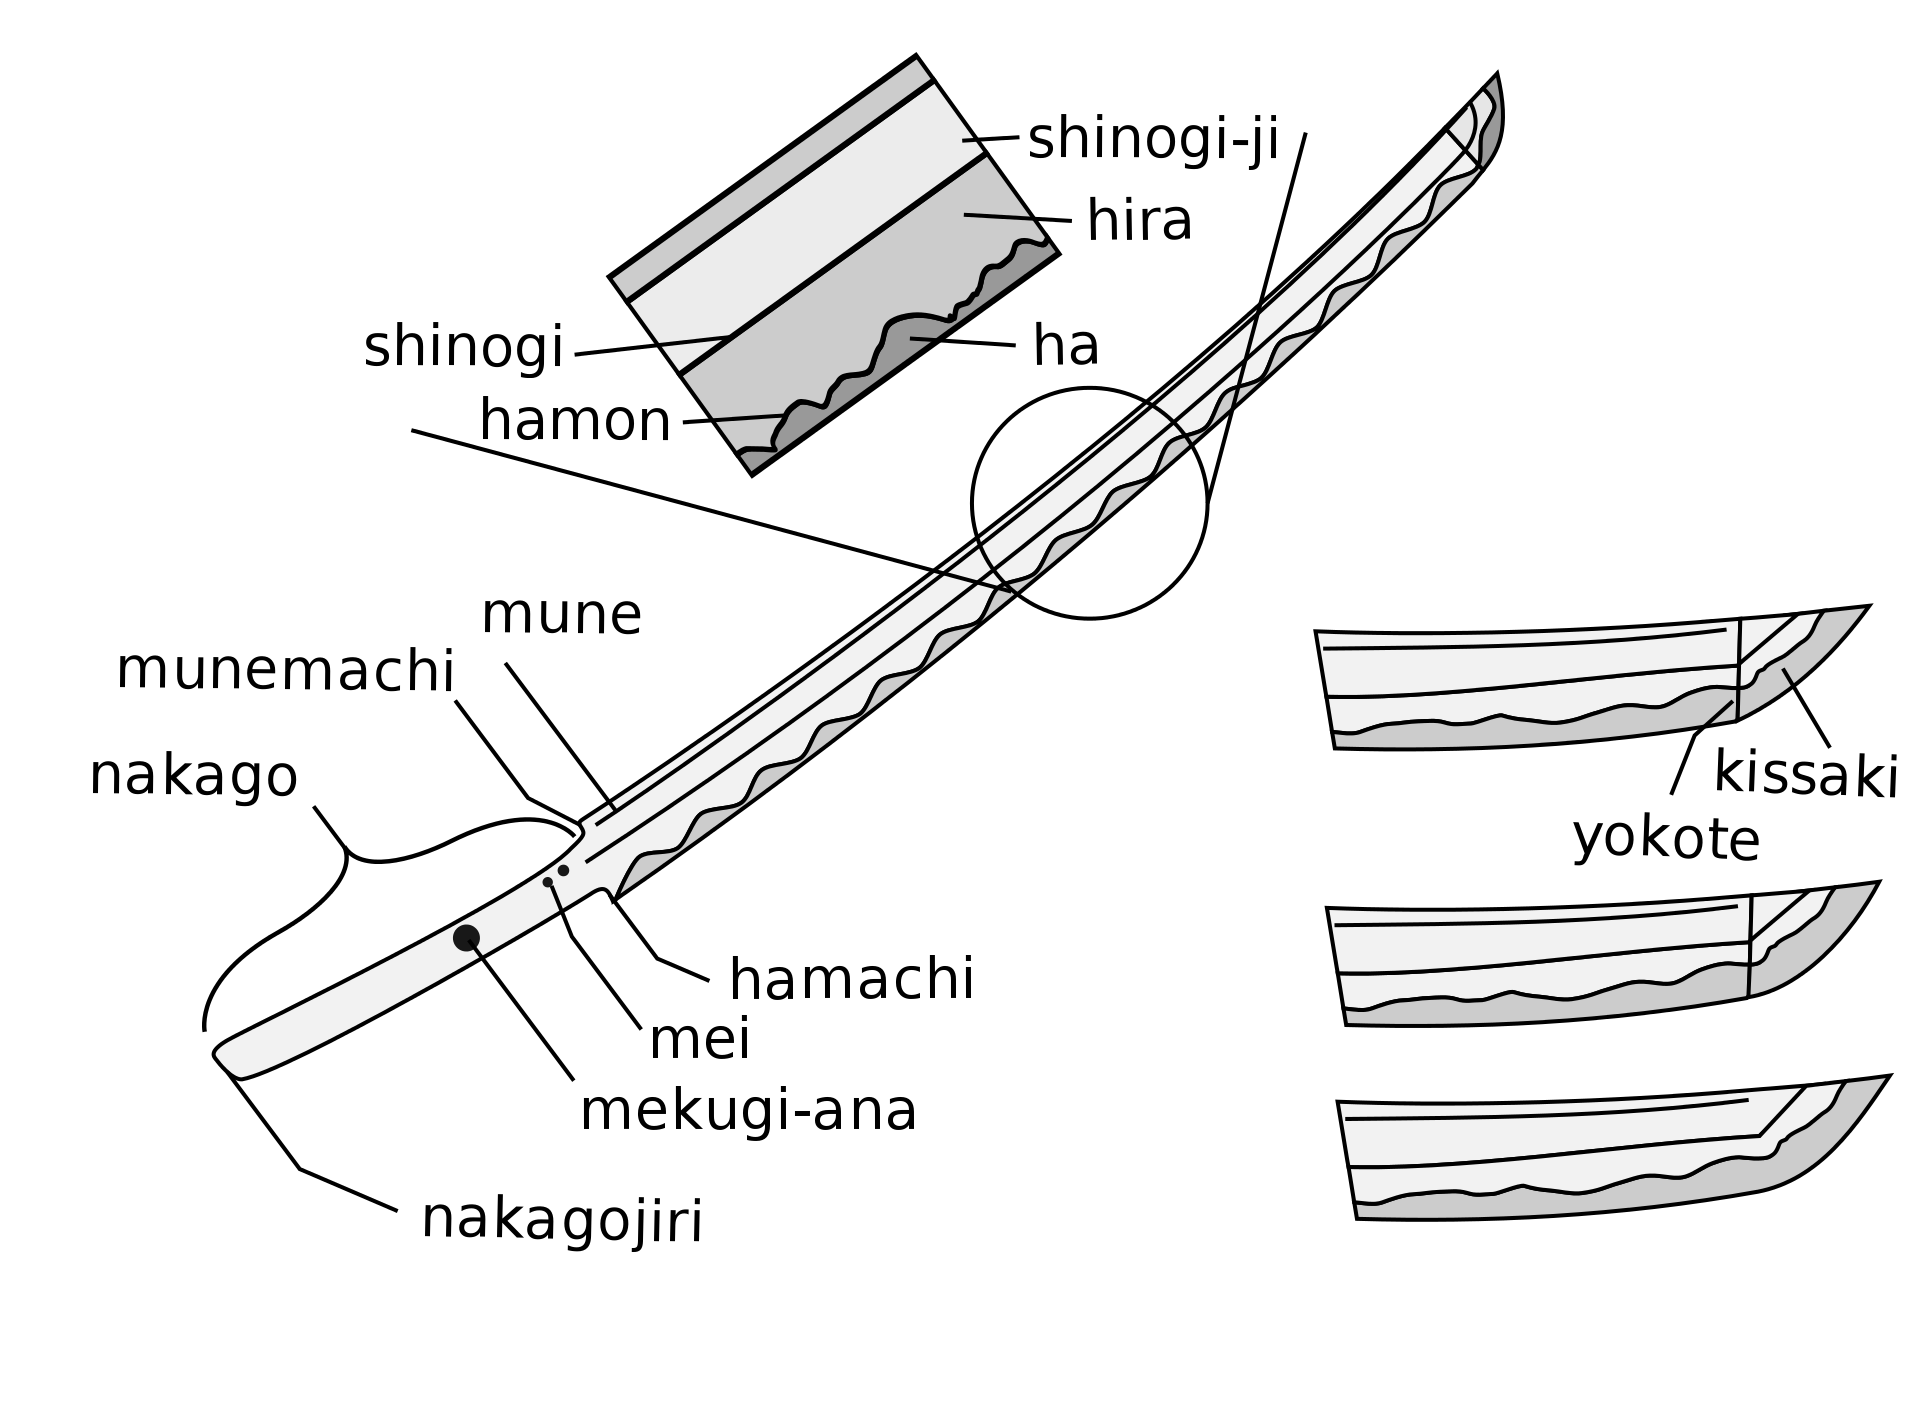 Diagram Showing The Parts Of A Nihont U014d Blade In